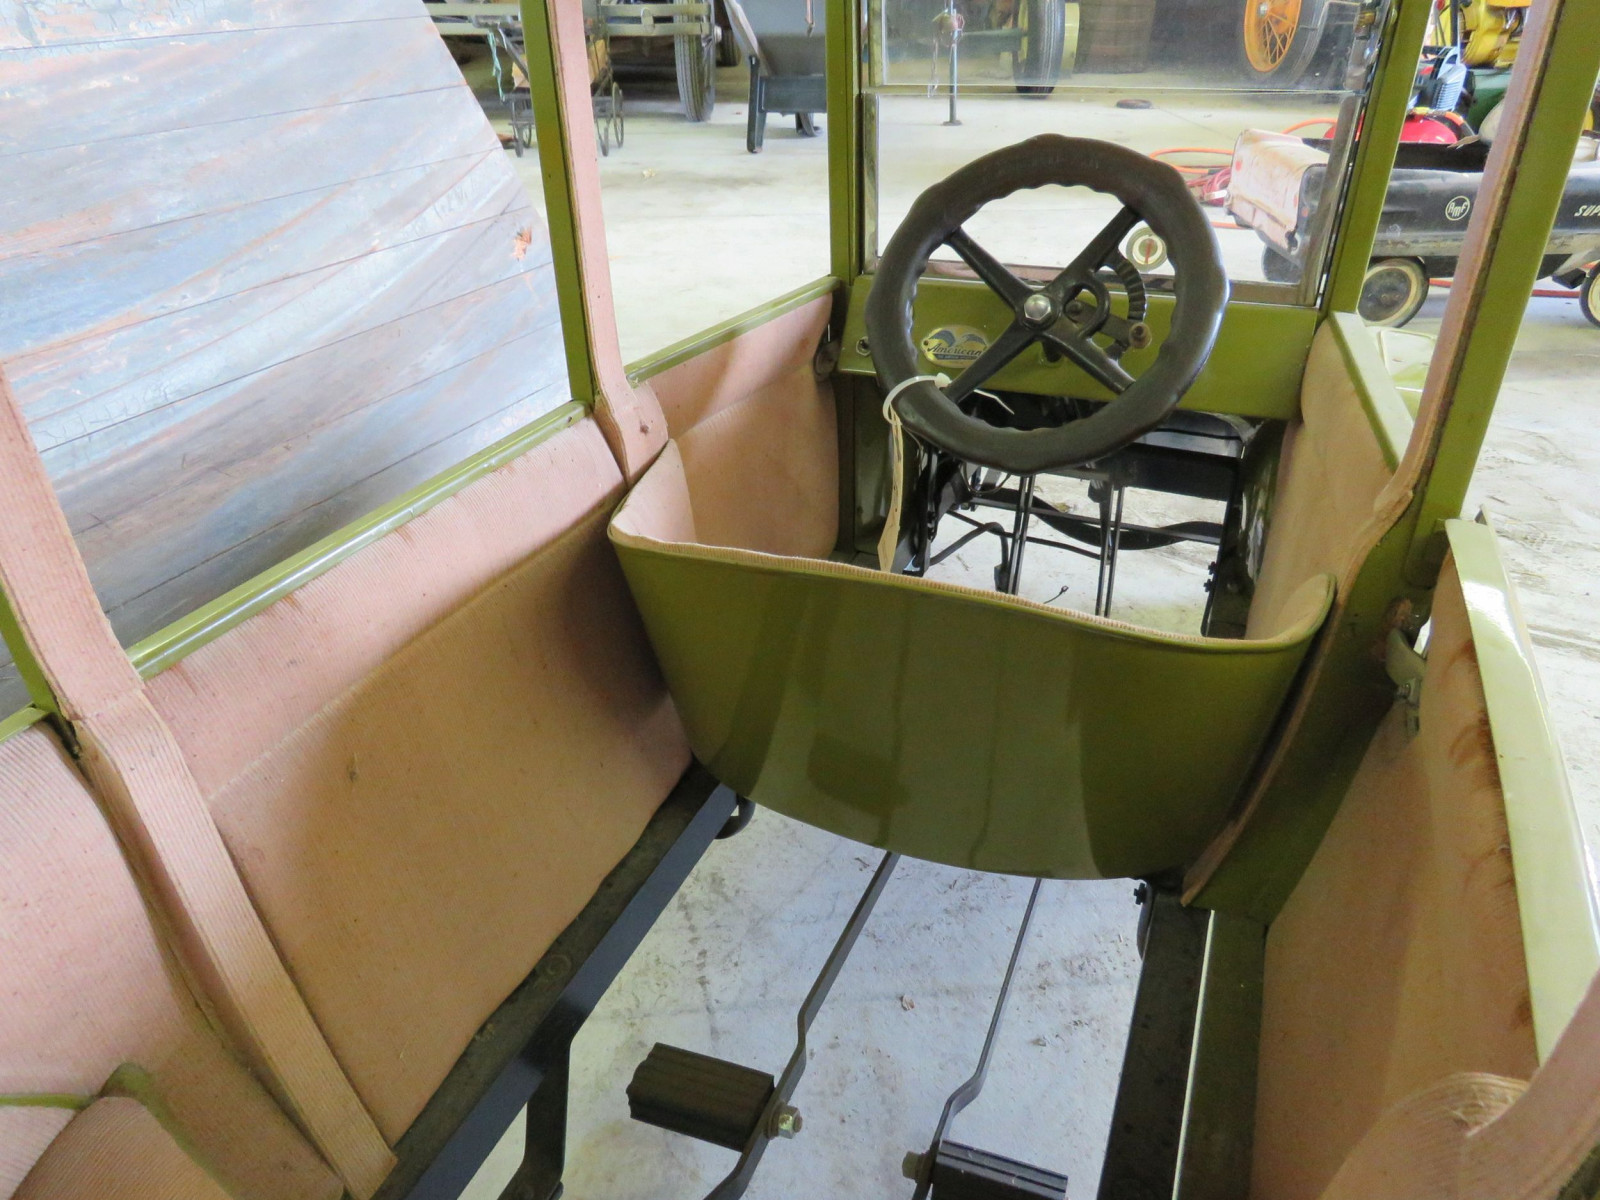 Ford Model T Center-Door Pedal Car - Image 7